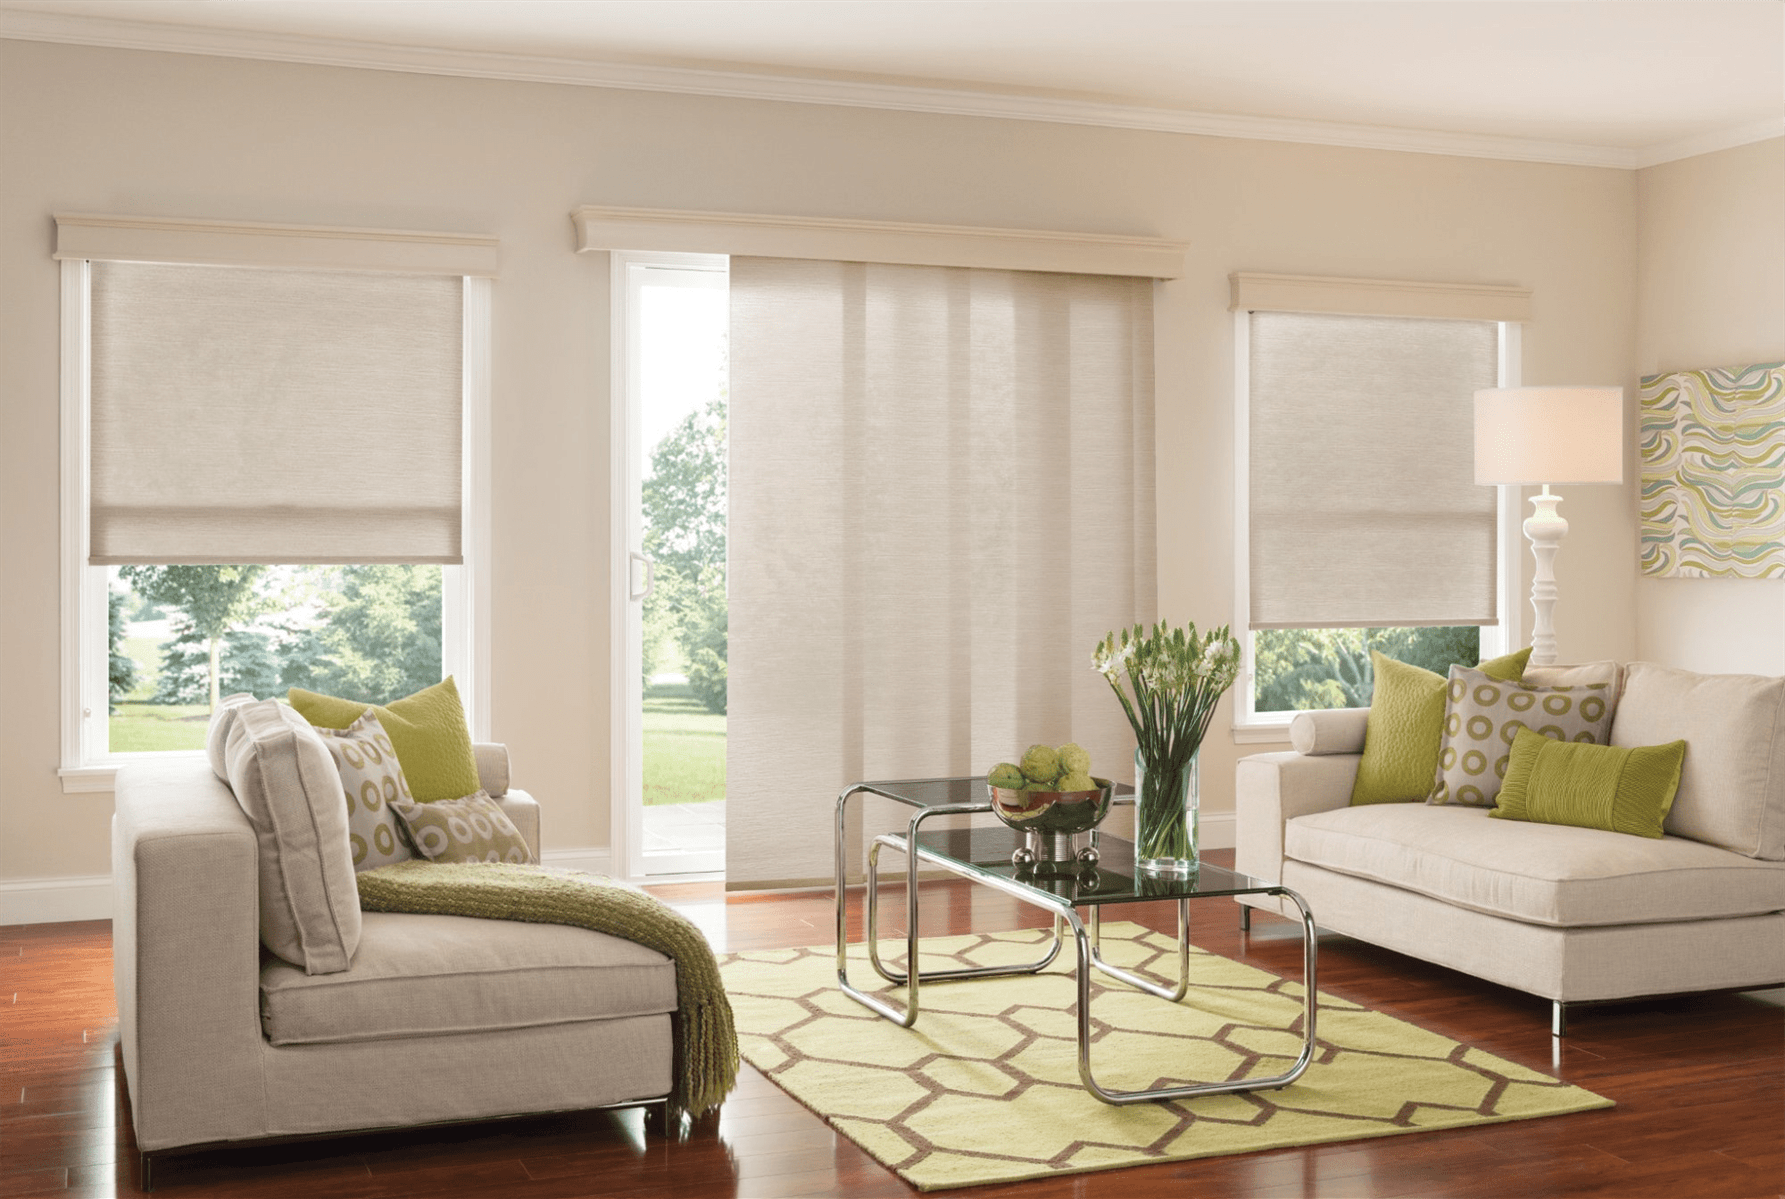 Living Room showcasing Window Treatments